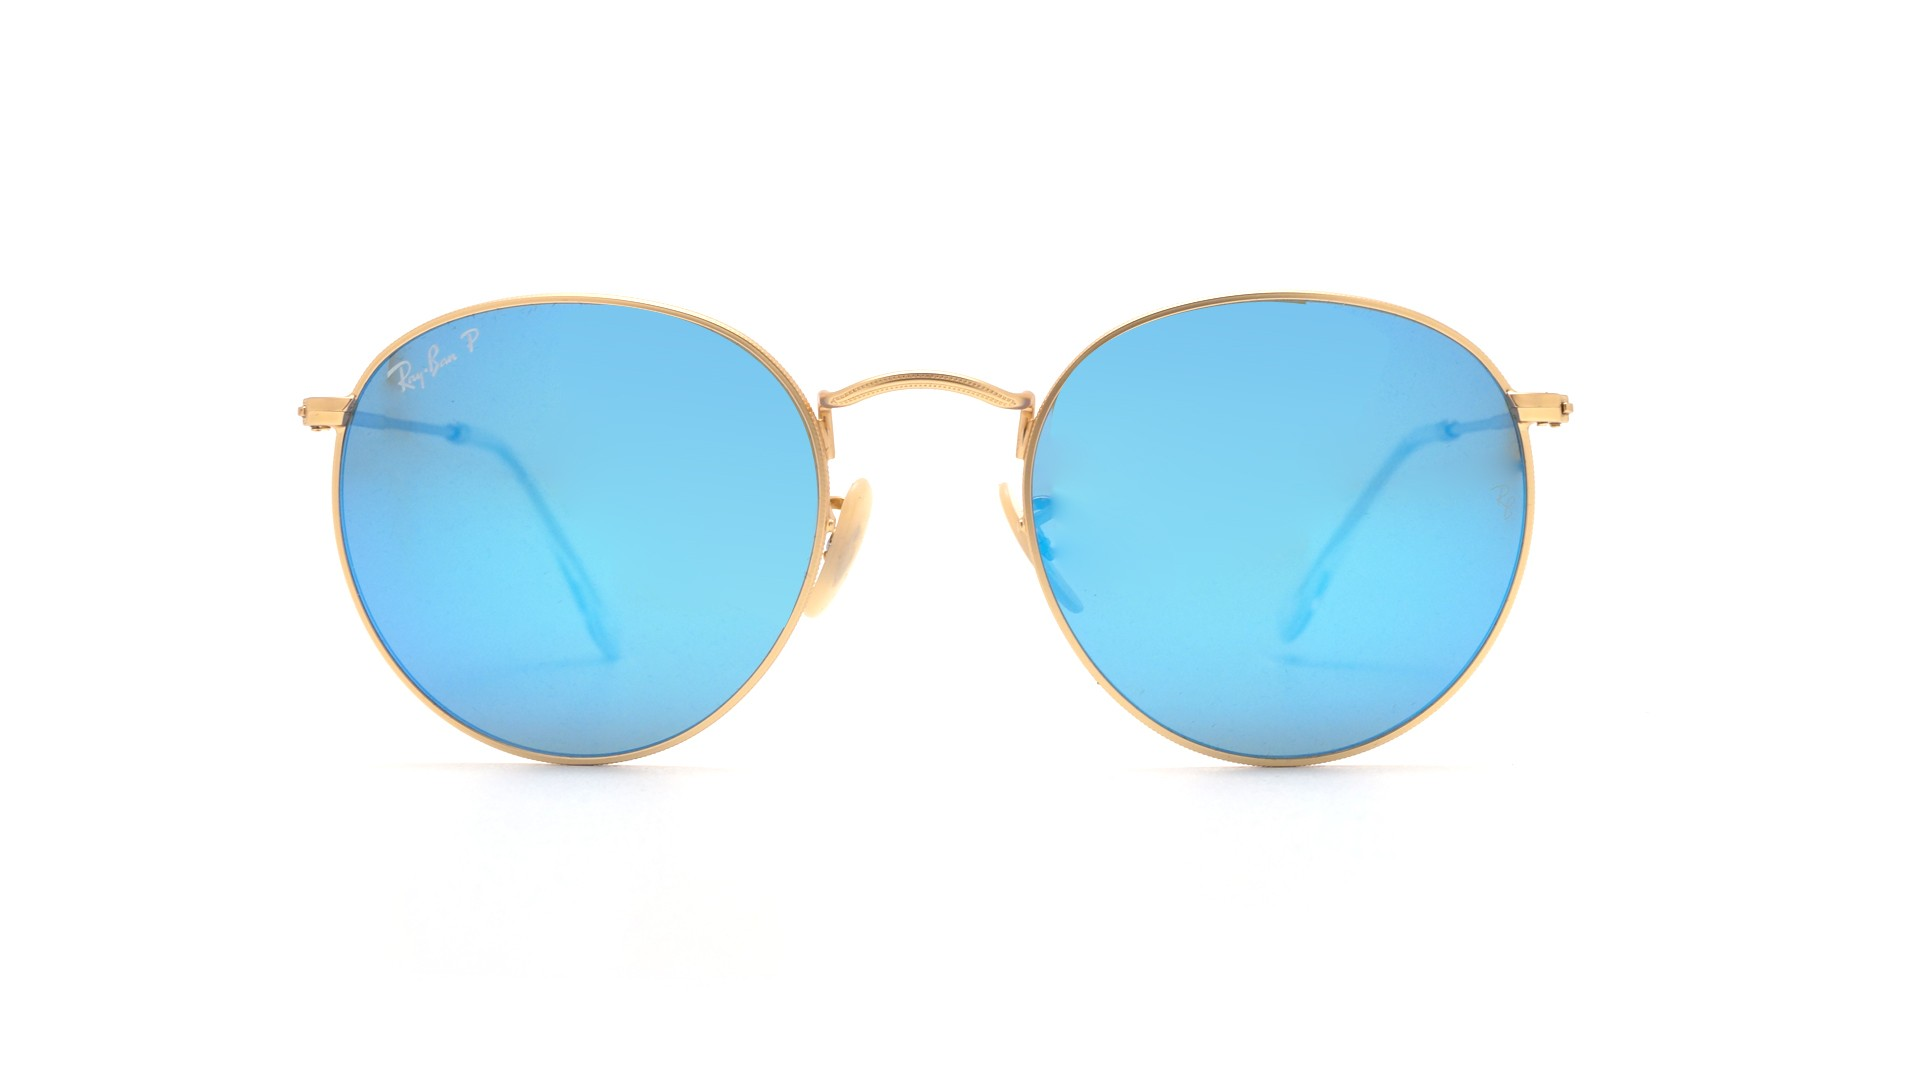 a1a13105c8 Sunglasses Ray-Ban Round Metal Gold Flash Lenses Matte RB3447 112 4L 53-21  Large Polarized Mirror